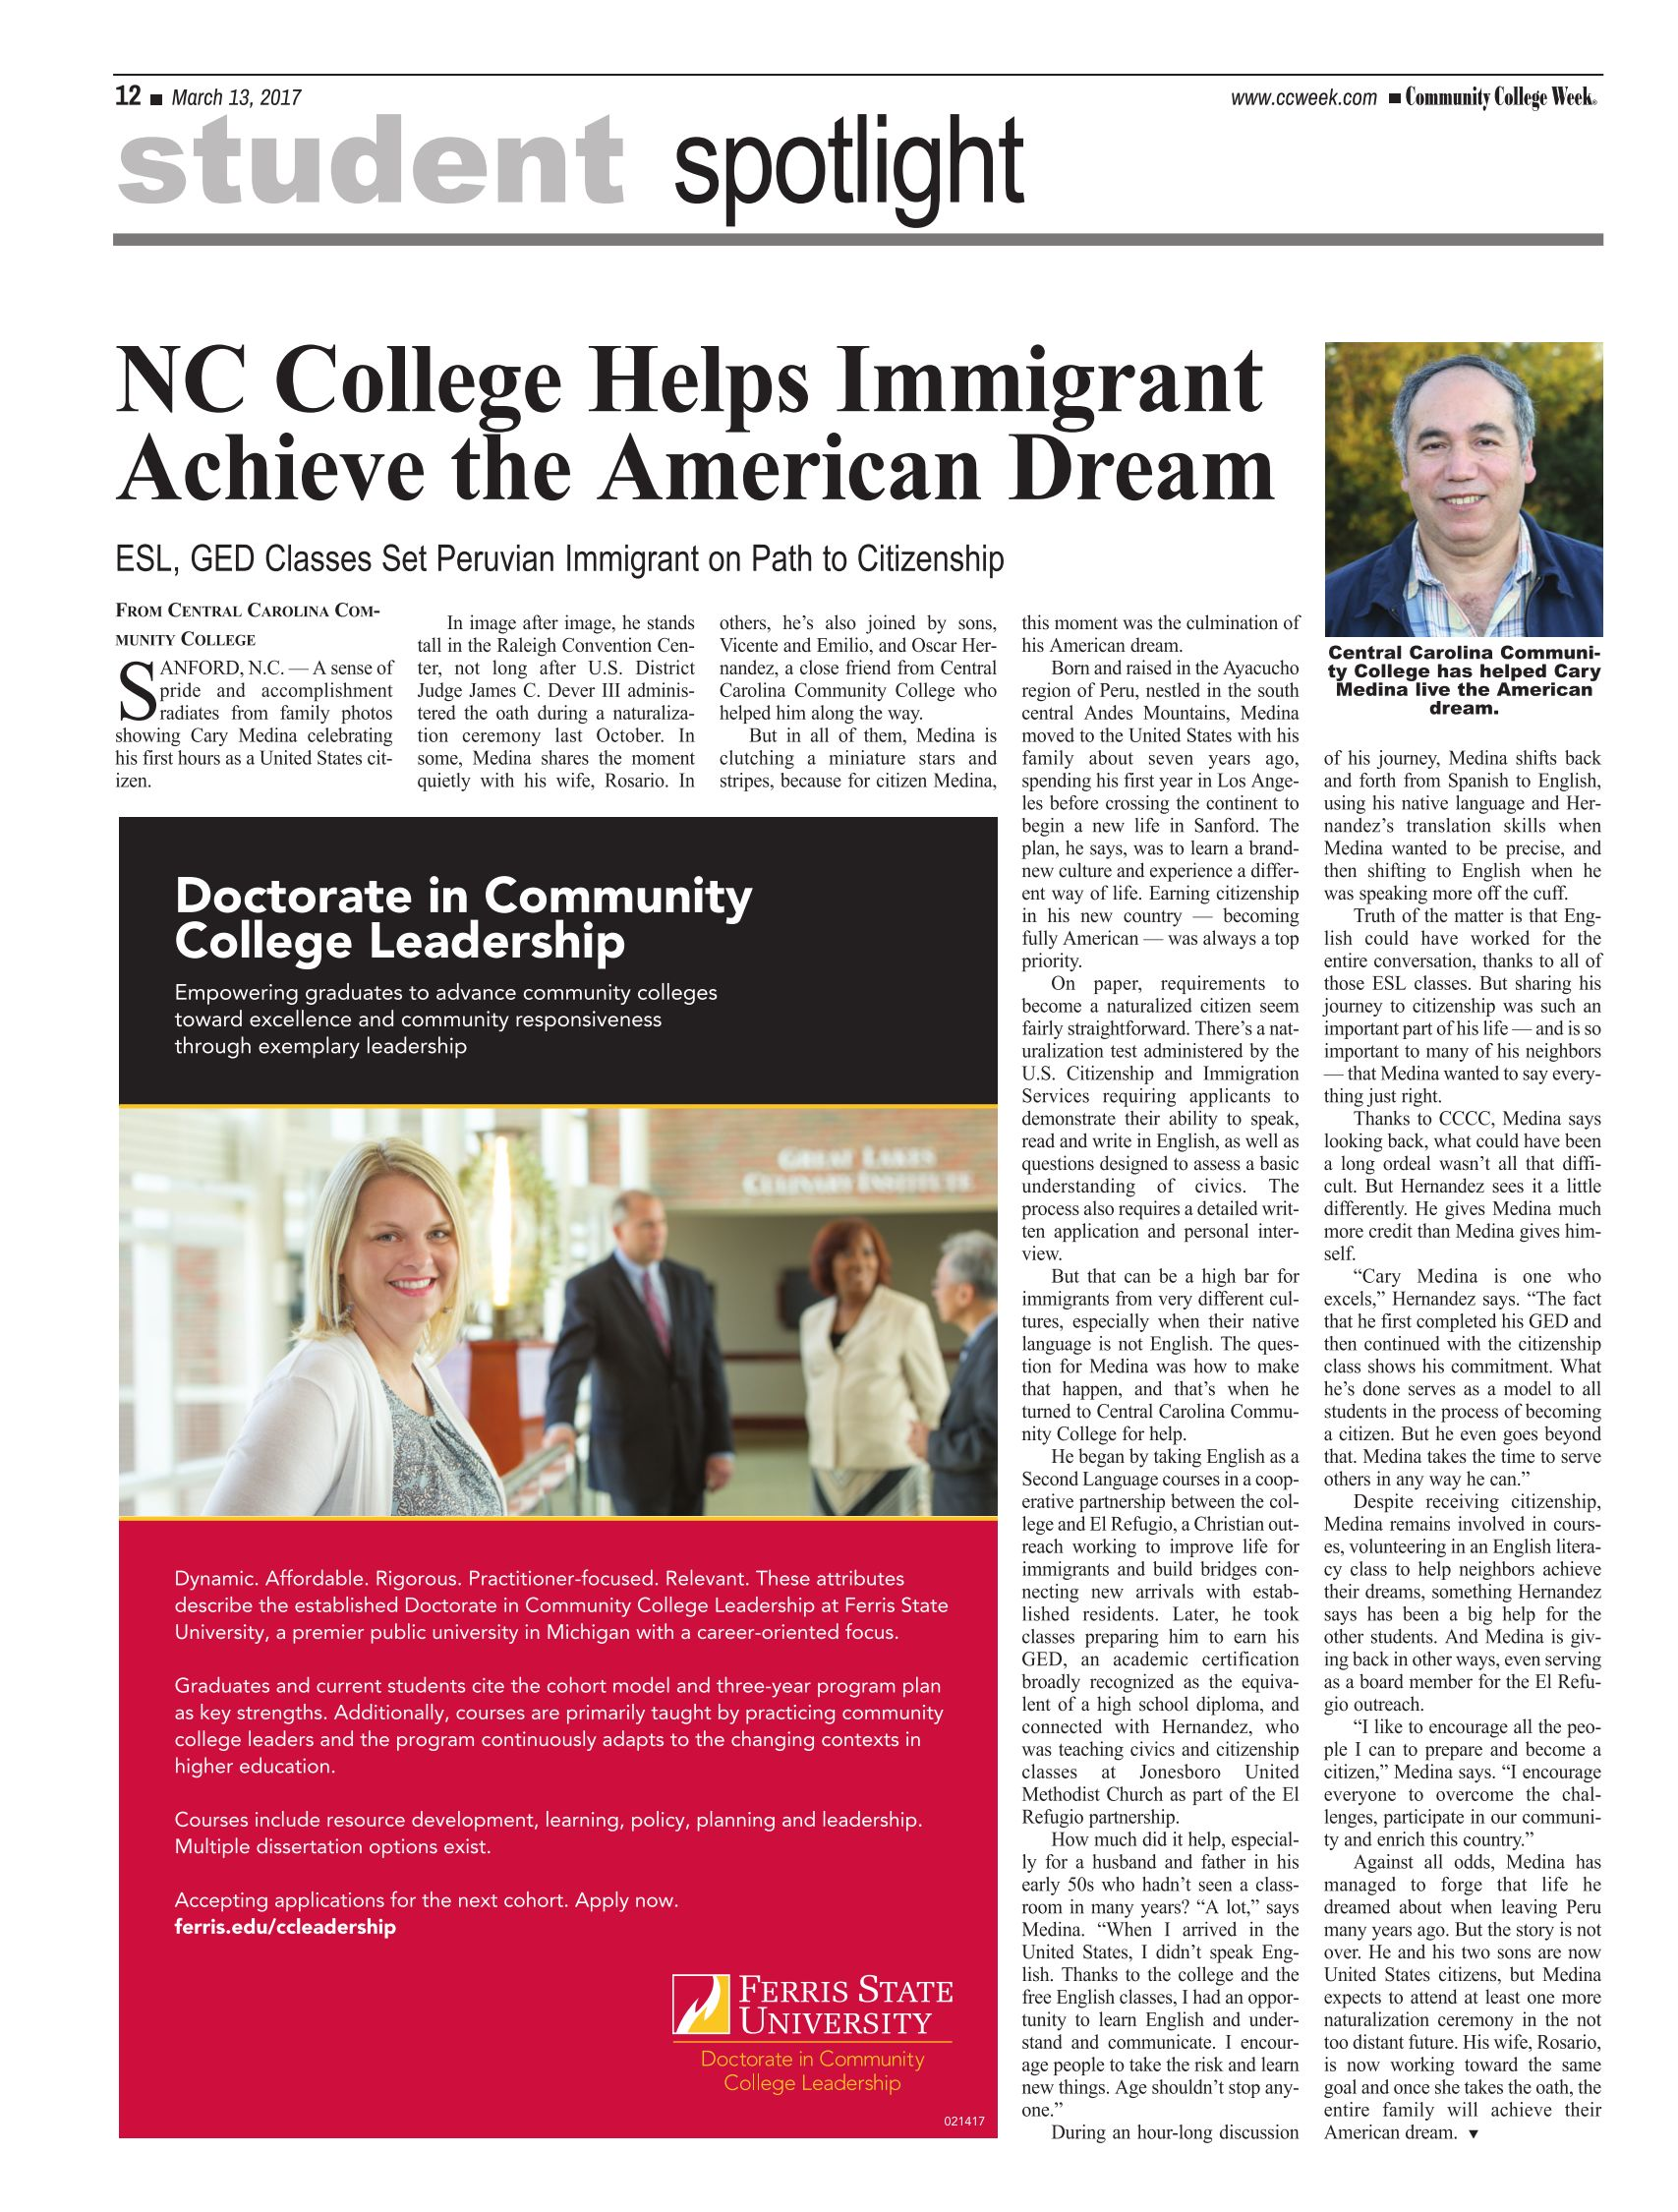 CCCC Helps Achieve the American Dream